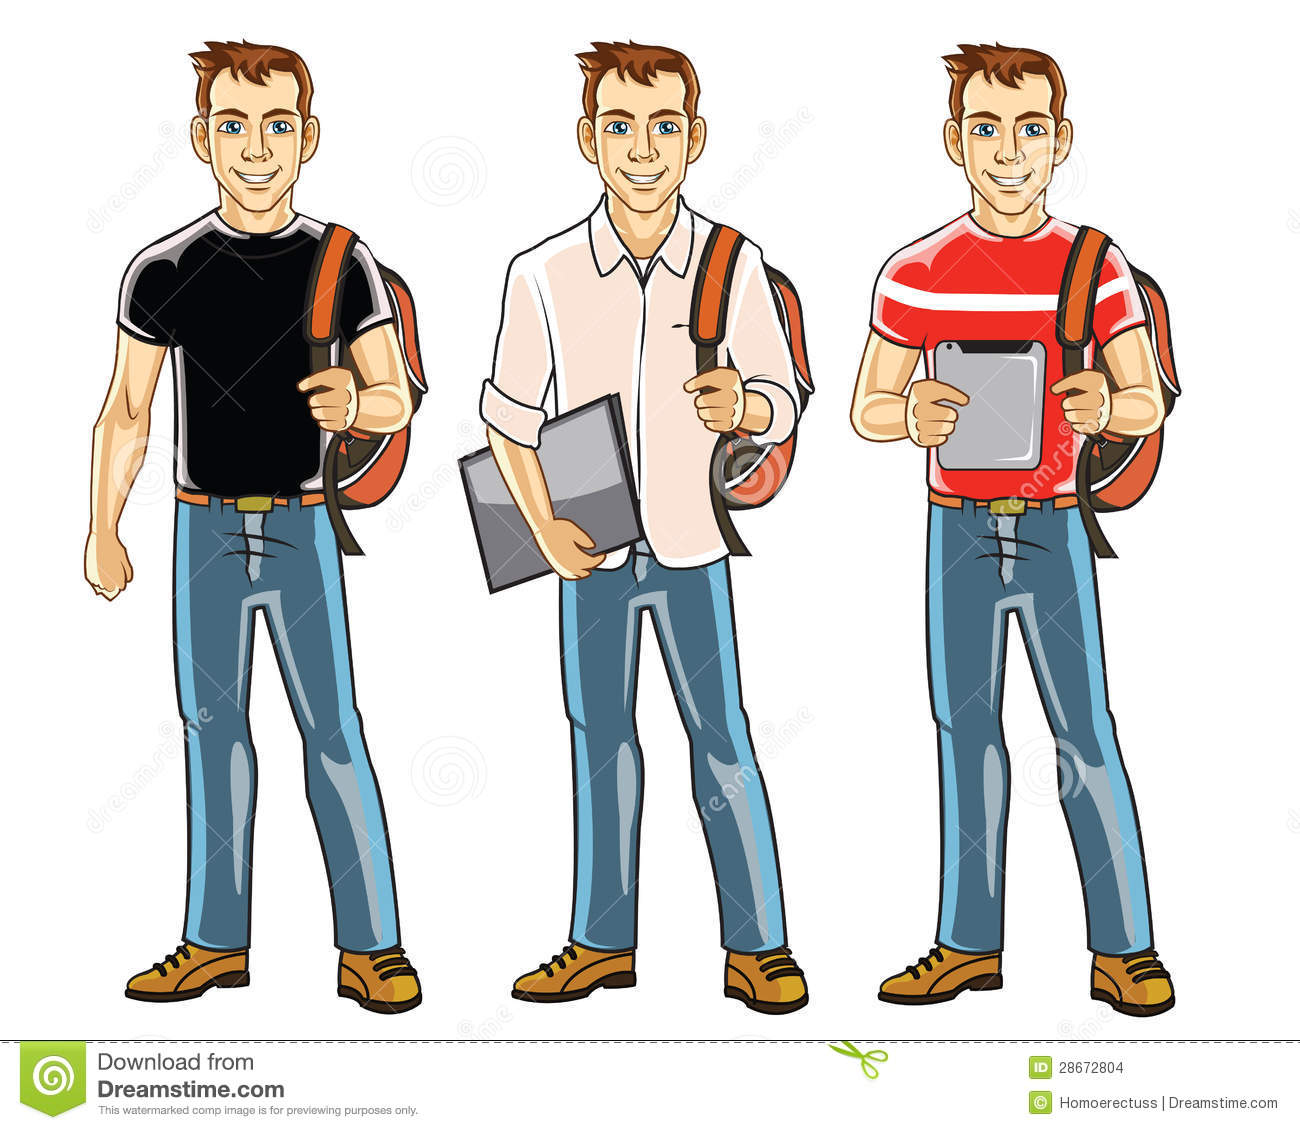 School Season School Starts Starting School Female College Student, The  University, Going To College, Character PNG Transparent Clipart Image and  PSD File for F… | Starting school, Student clipart, College students